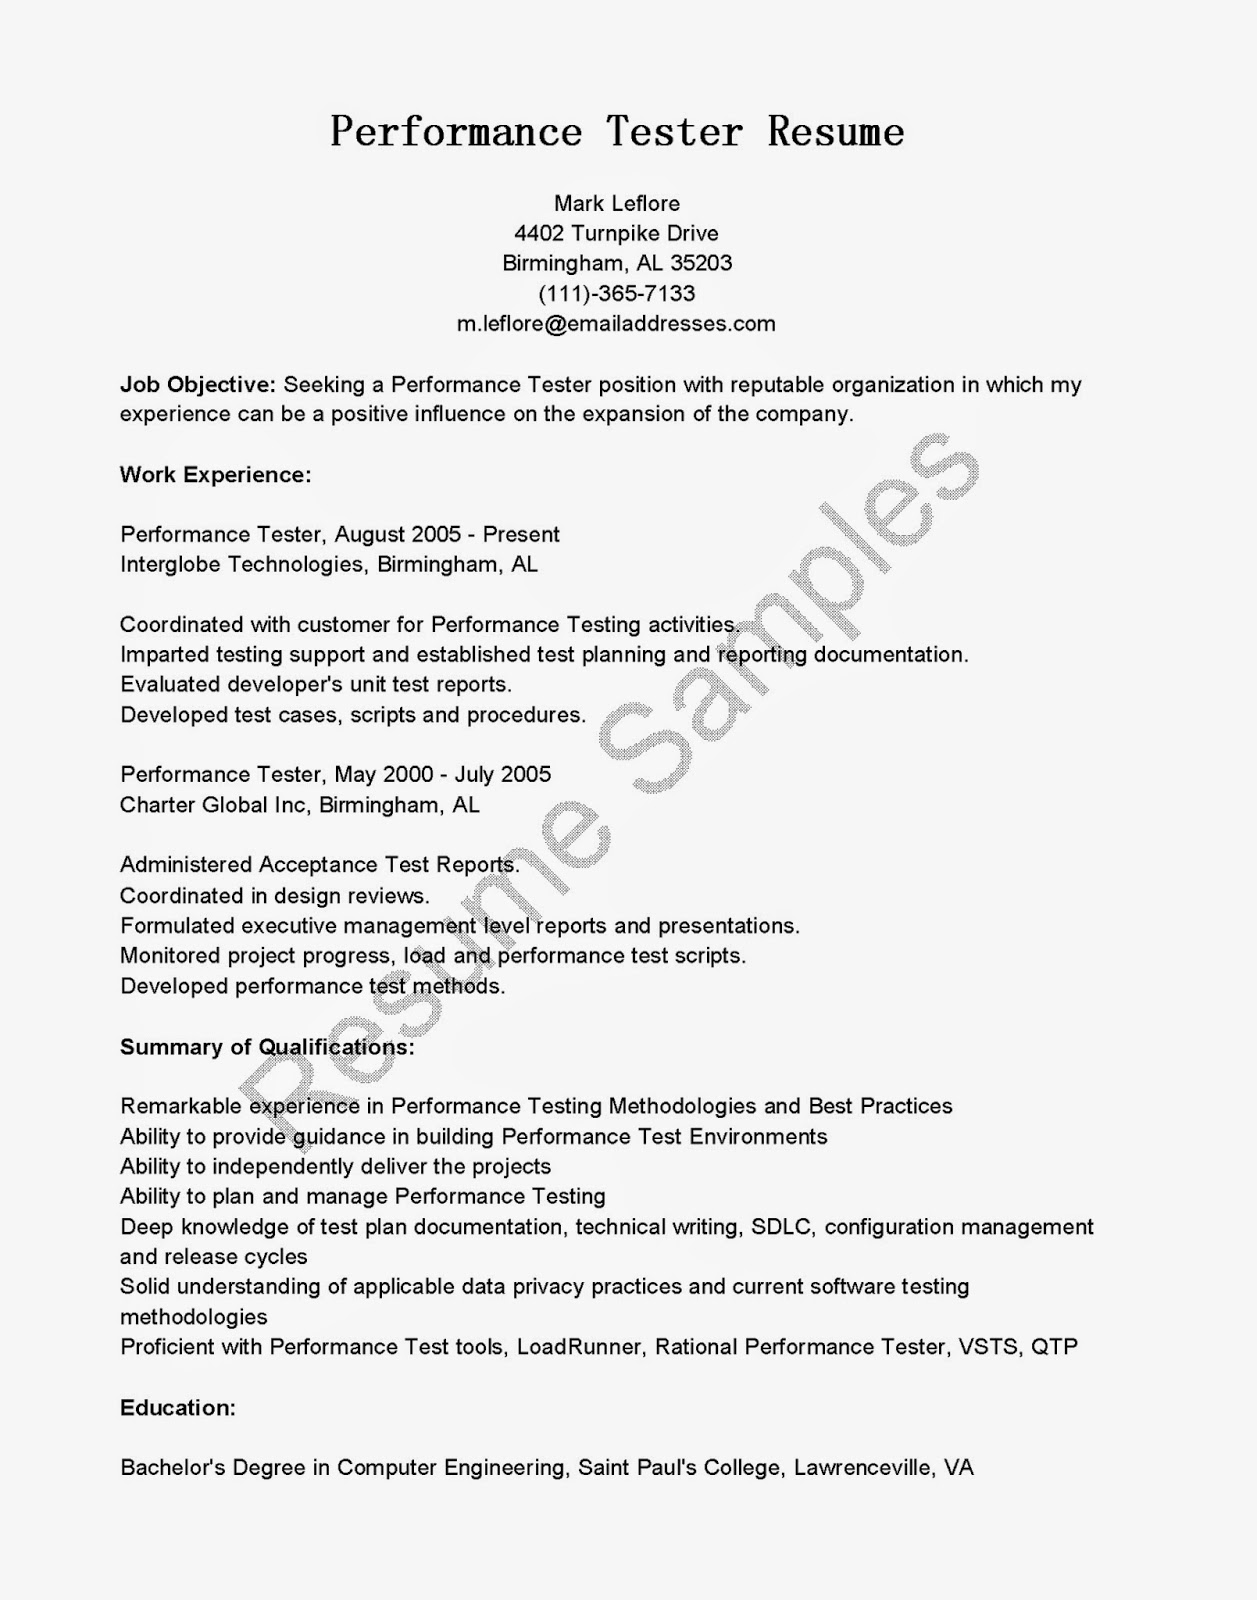 performance tester resume - Military.bralicious.co